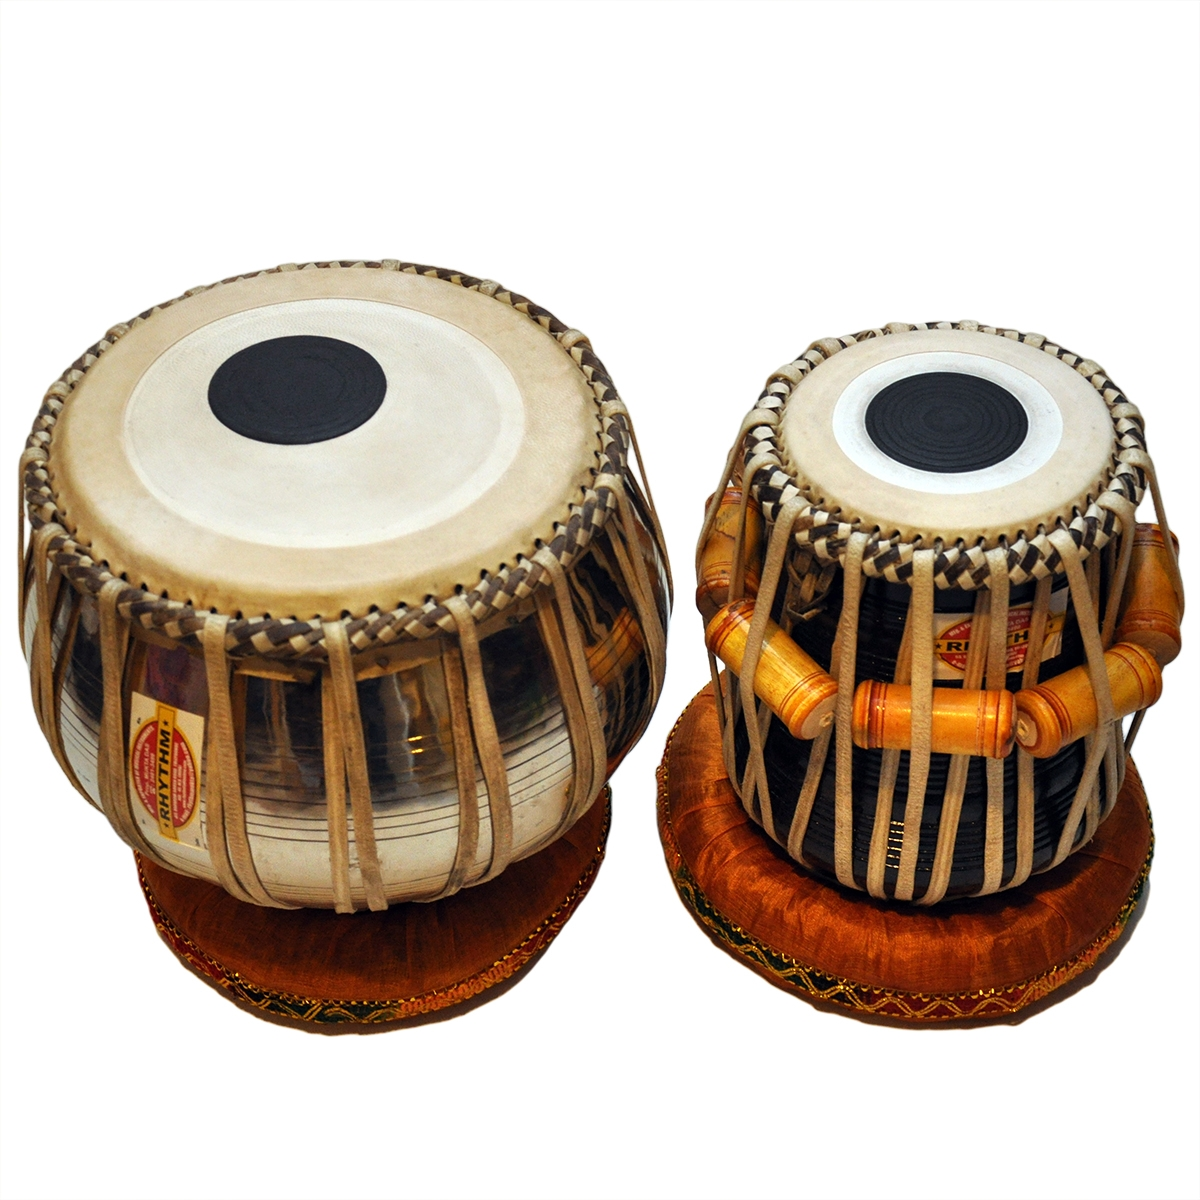 Mukta Das Pro Tablas for sale at Old Delhi Music - Tabla PNG